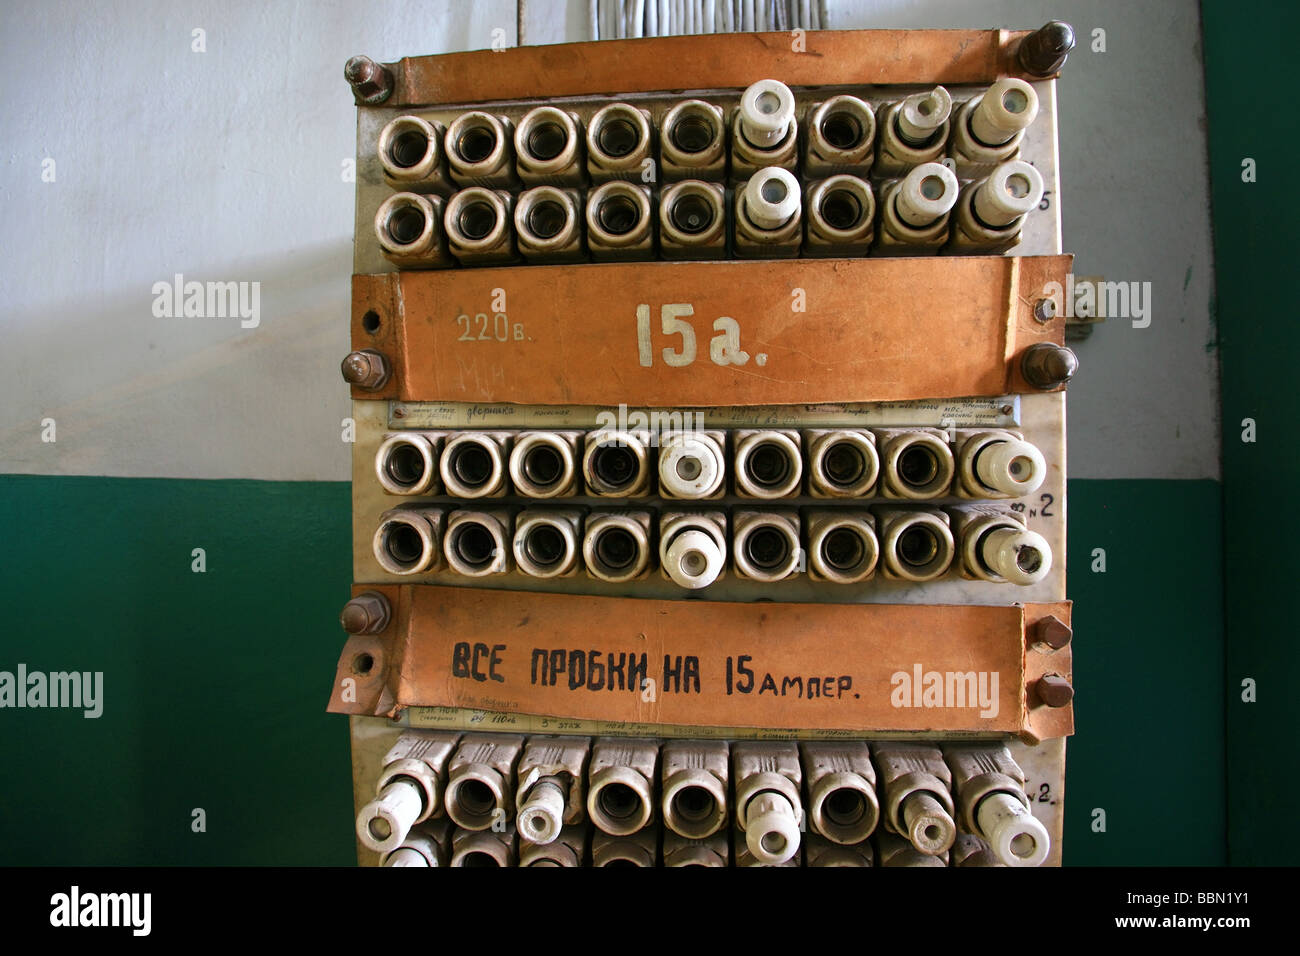 old single fuse box old fuses fuse box stock photos & old fuses fuse box stock ... old time fuse box